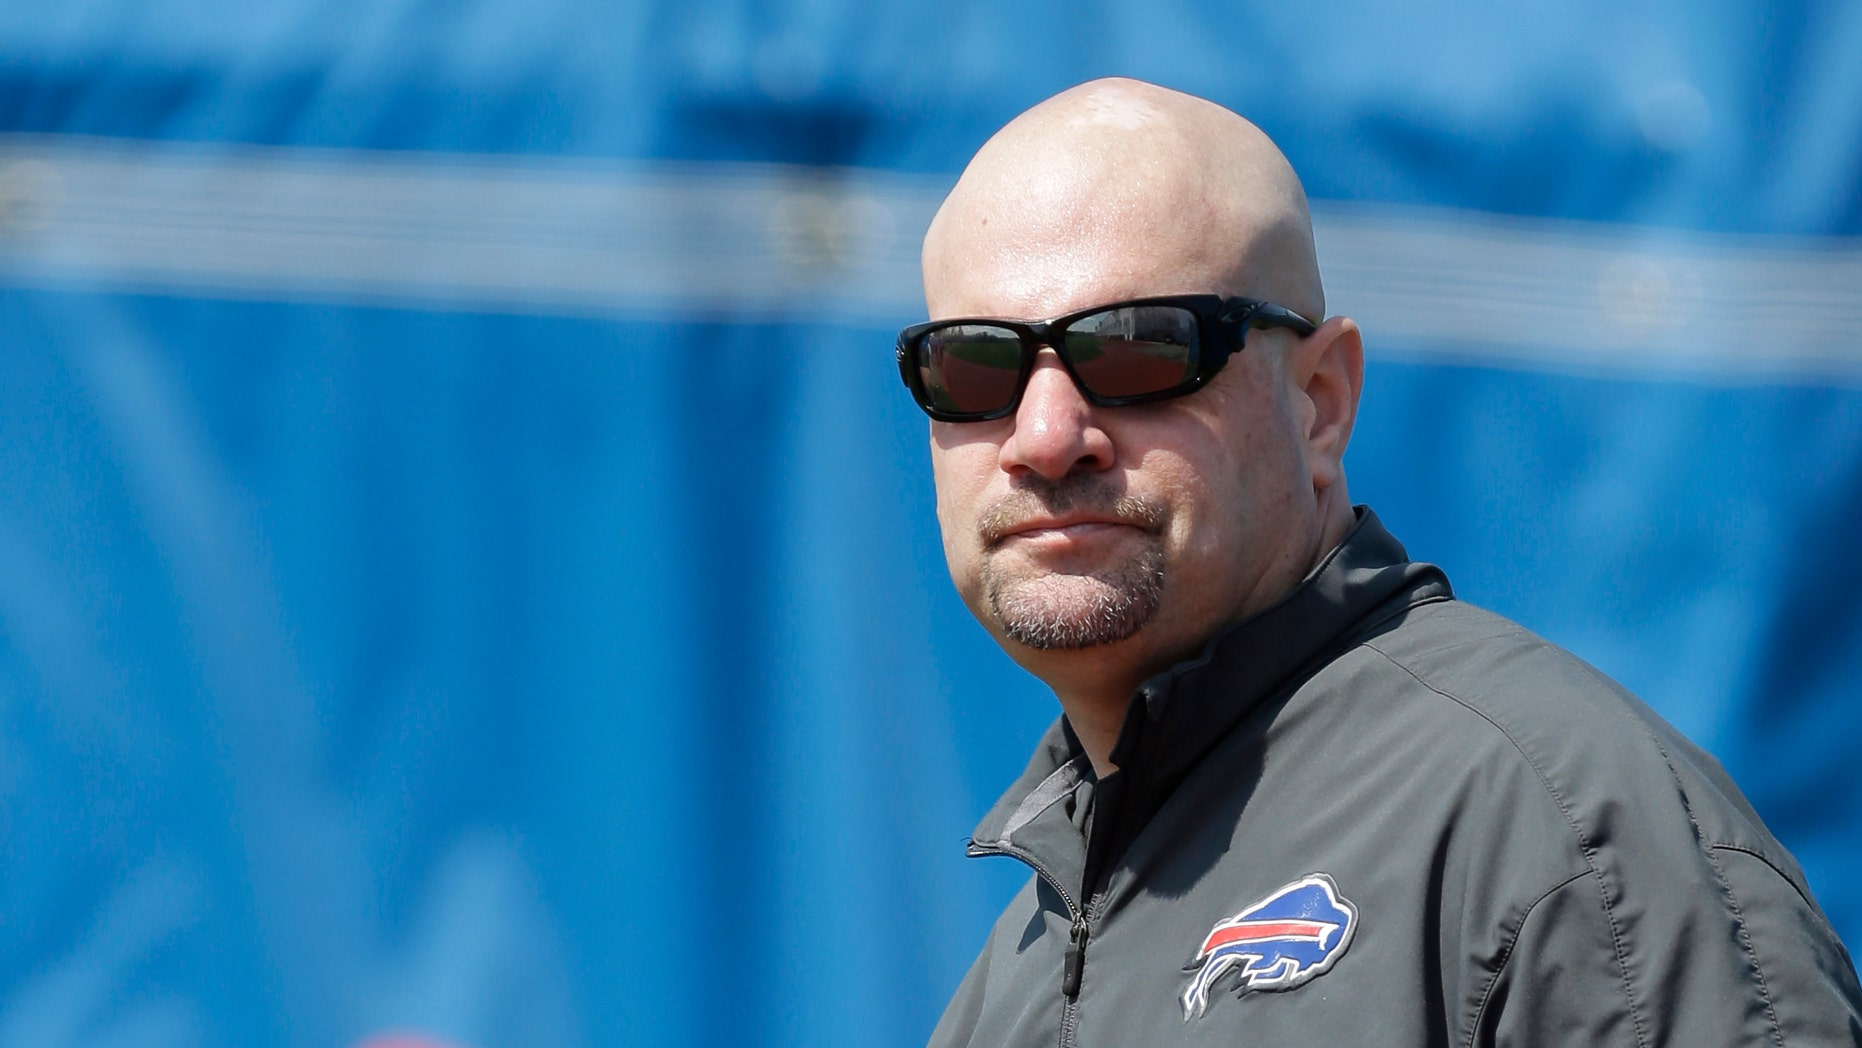 FILE - In this May 20, 2013 file photo,  Buffalo Bills new defensive coordinator Mike Pettine looks on during an optional NFL football workout in Orchard Park, N.Y. When it comes to putting together his defense, Pettine's intention is to keep opponents guessing. (AP Photo/David Duprey, File)